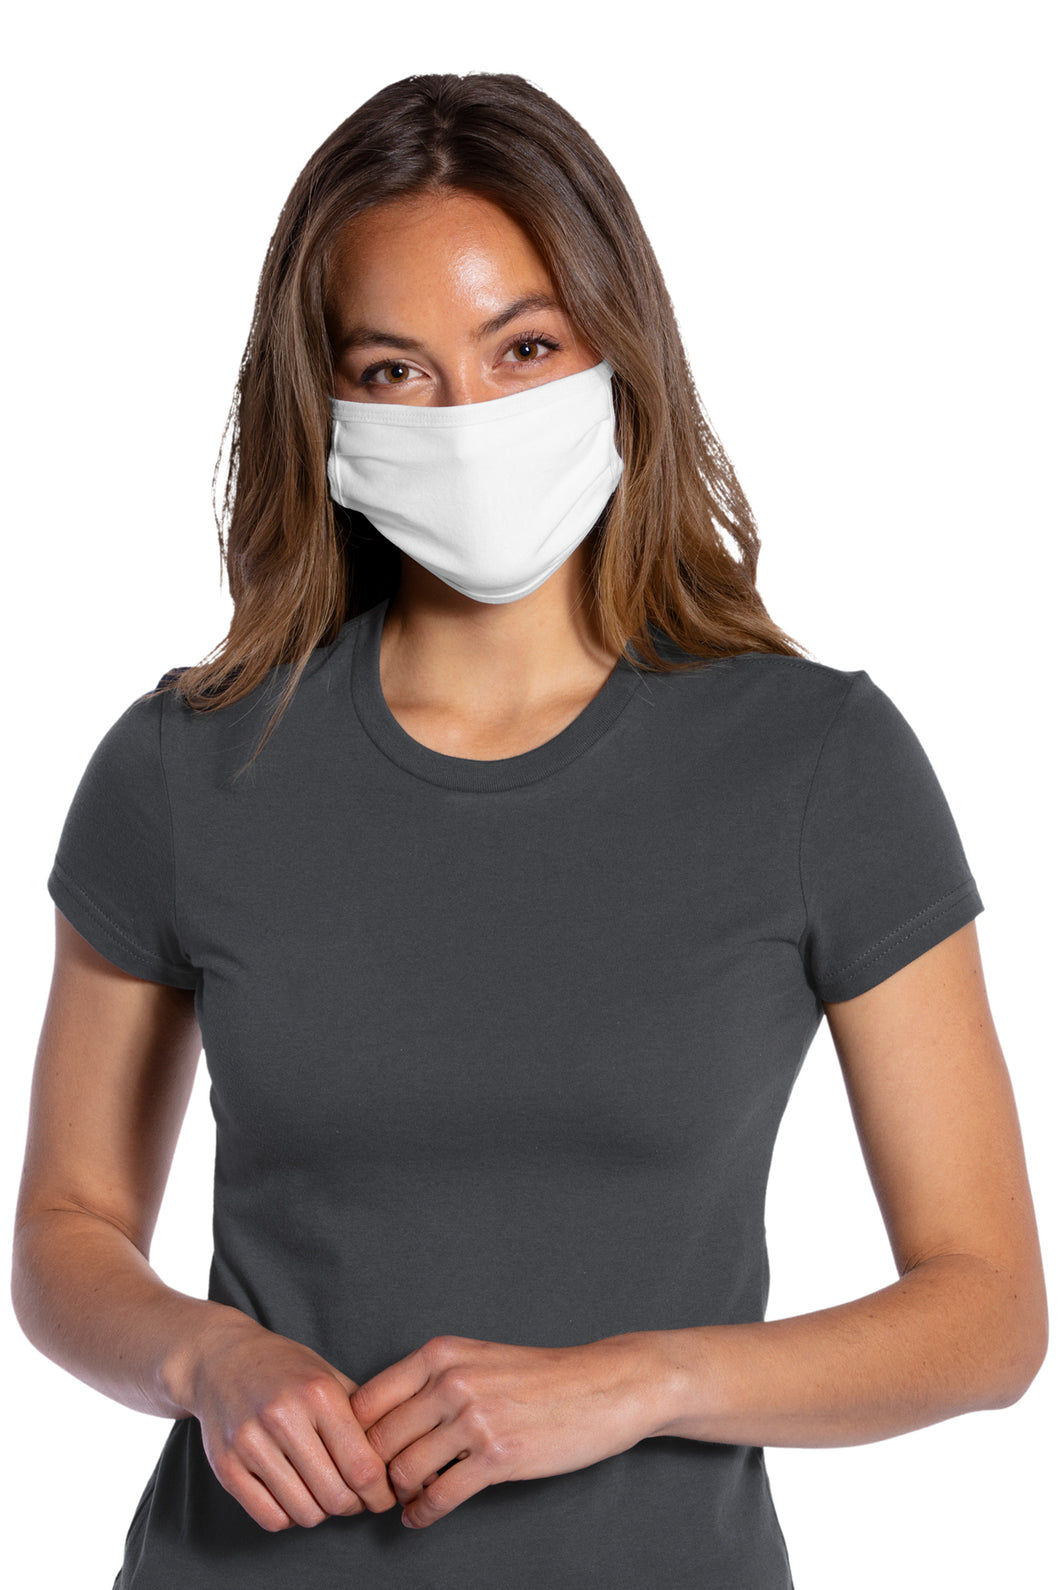 Antimicrobial Cotton Knit Face Mask - 50 Pack